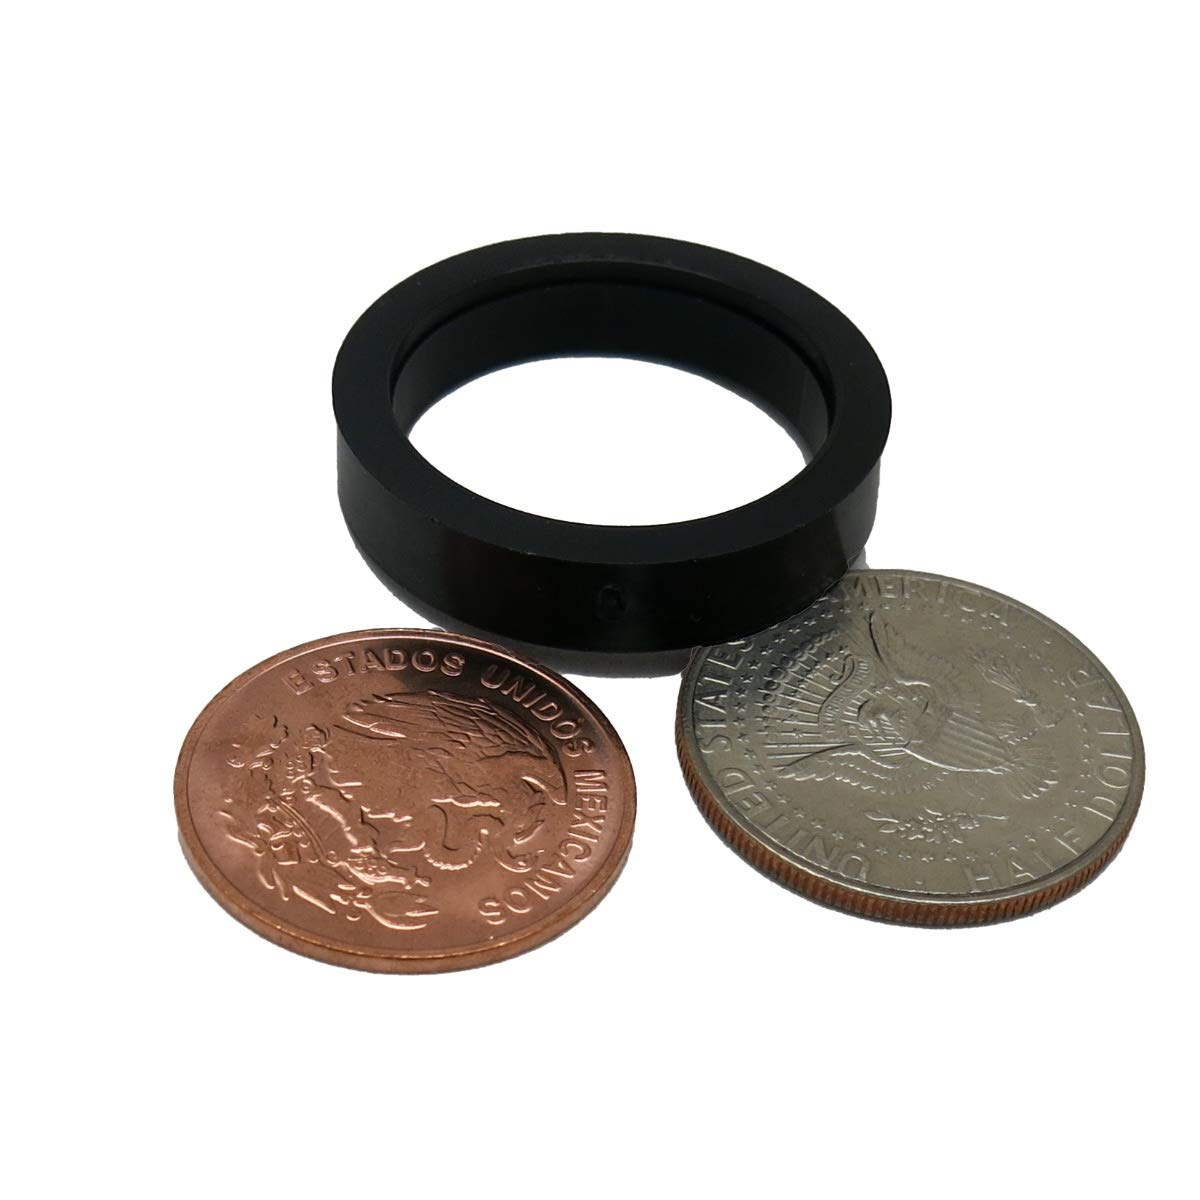 Rock Ridge Scotch and Soda Magic Trick, Coin Deception Game for Kids and Adults by Rock Ridge